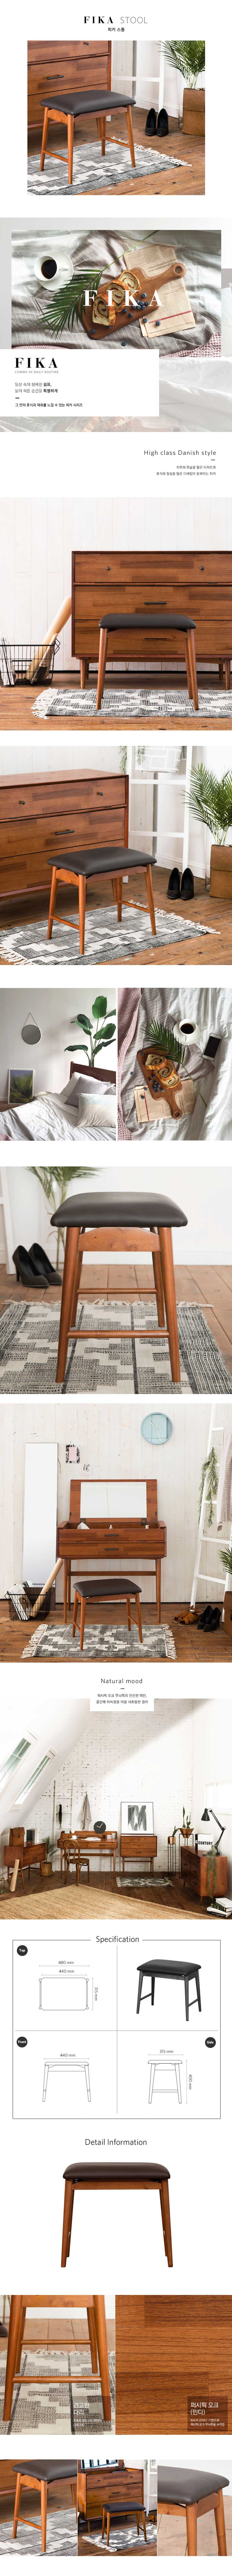 Fika_Swedish_Stool_Online_Furniture_Singapore_Product_Information_by_born_in_colour